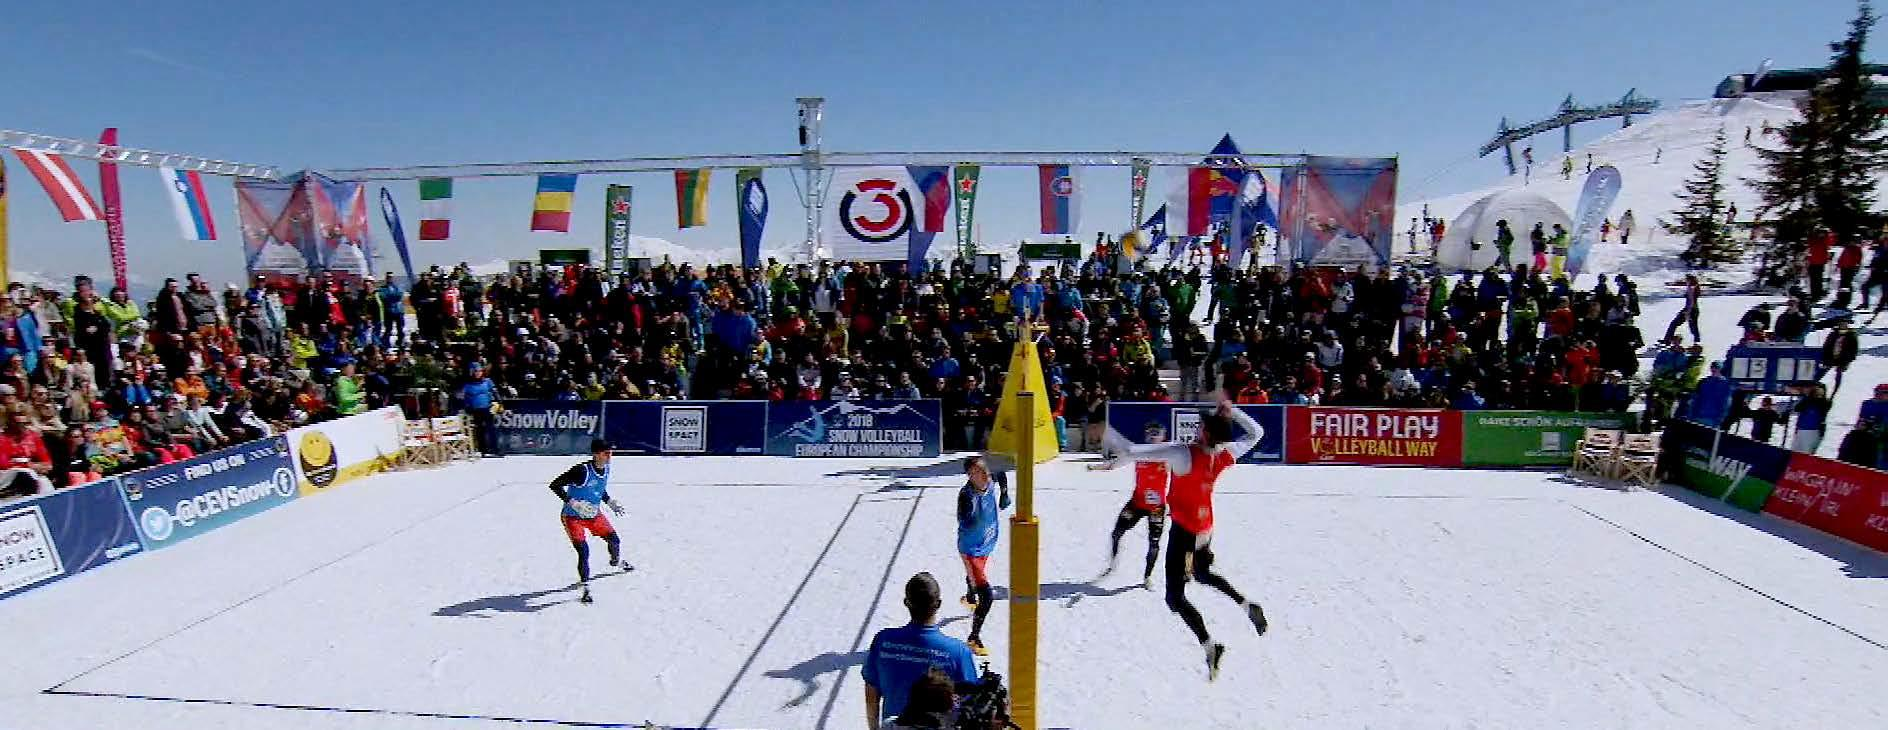 OU Flex set up for the Snow Volleyball tournament in the Austrian Alps